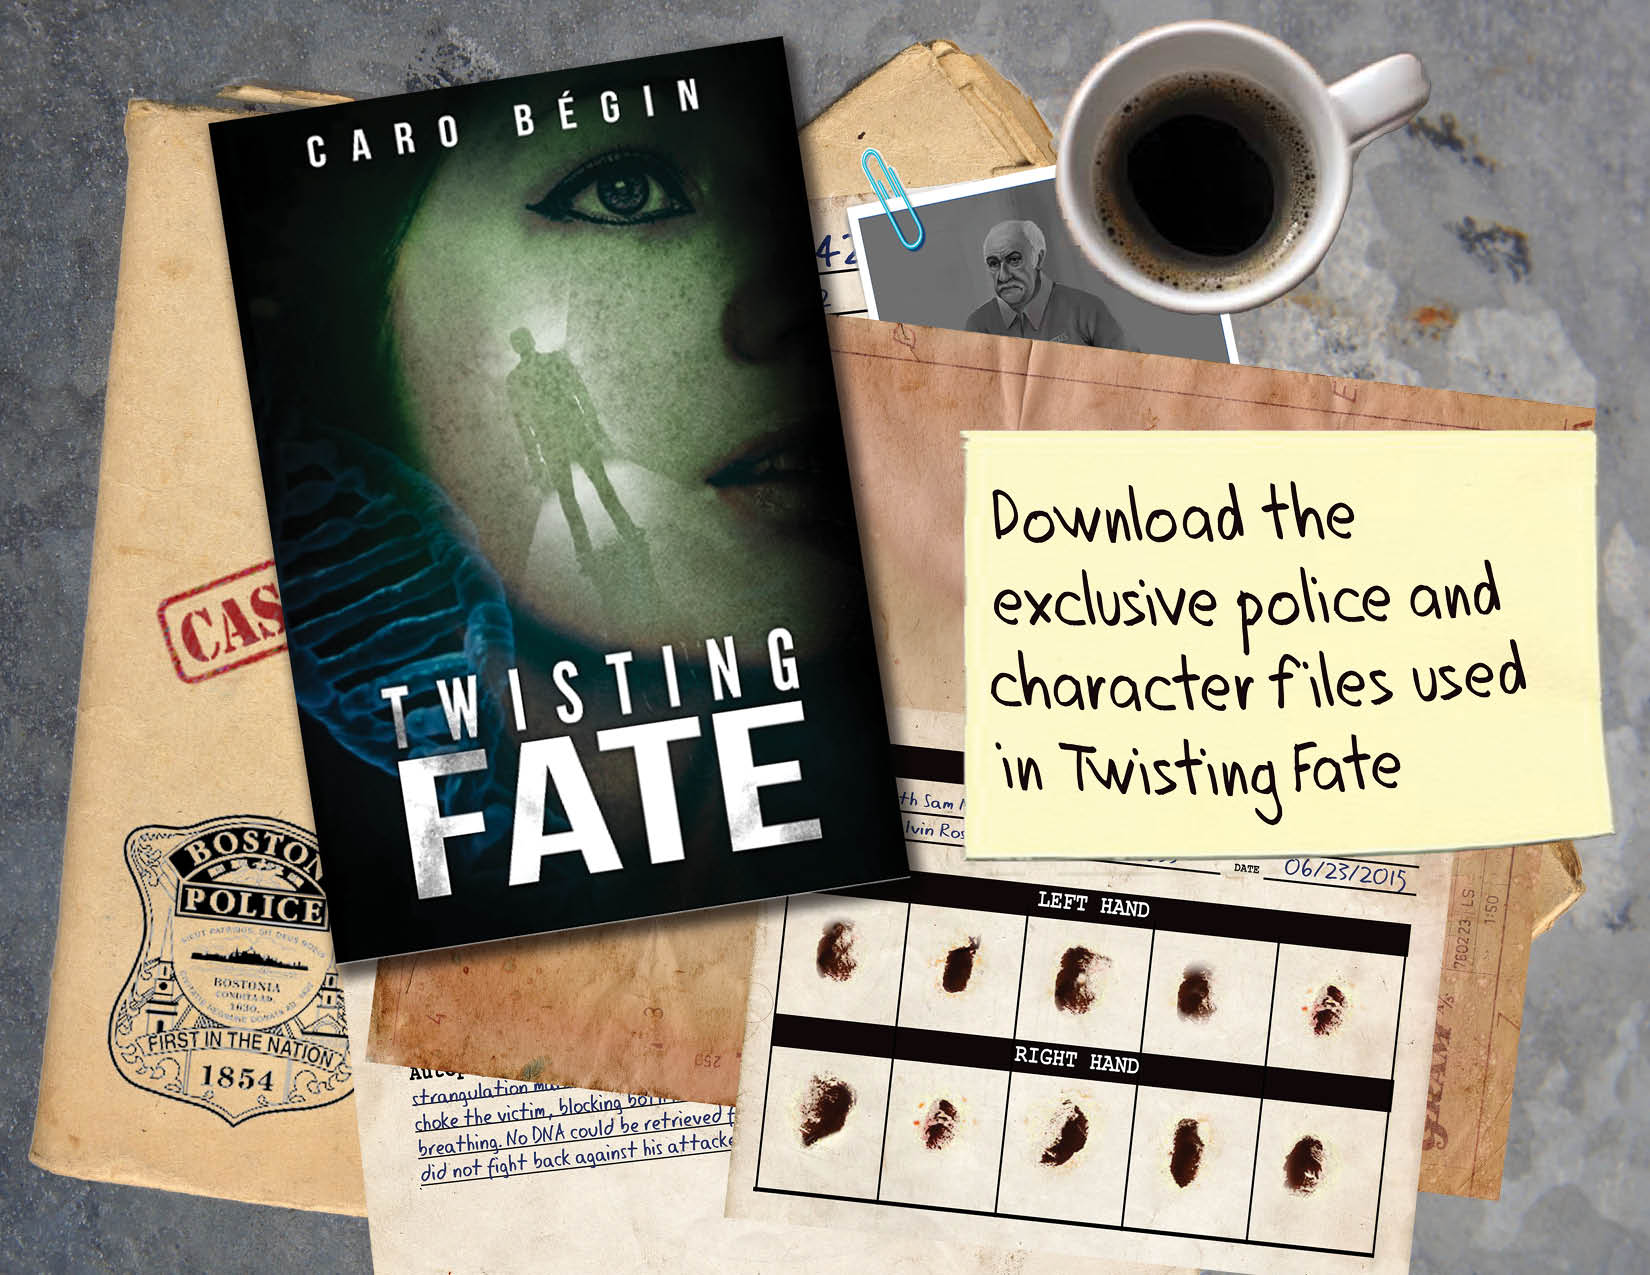 Sign up to download exclusive police and character files used in Twisting Fate